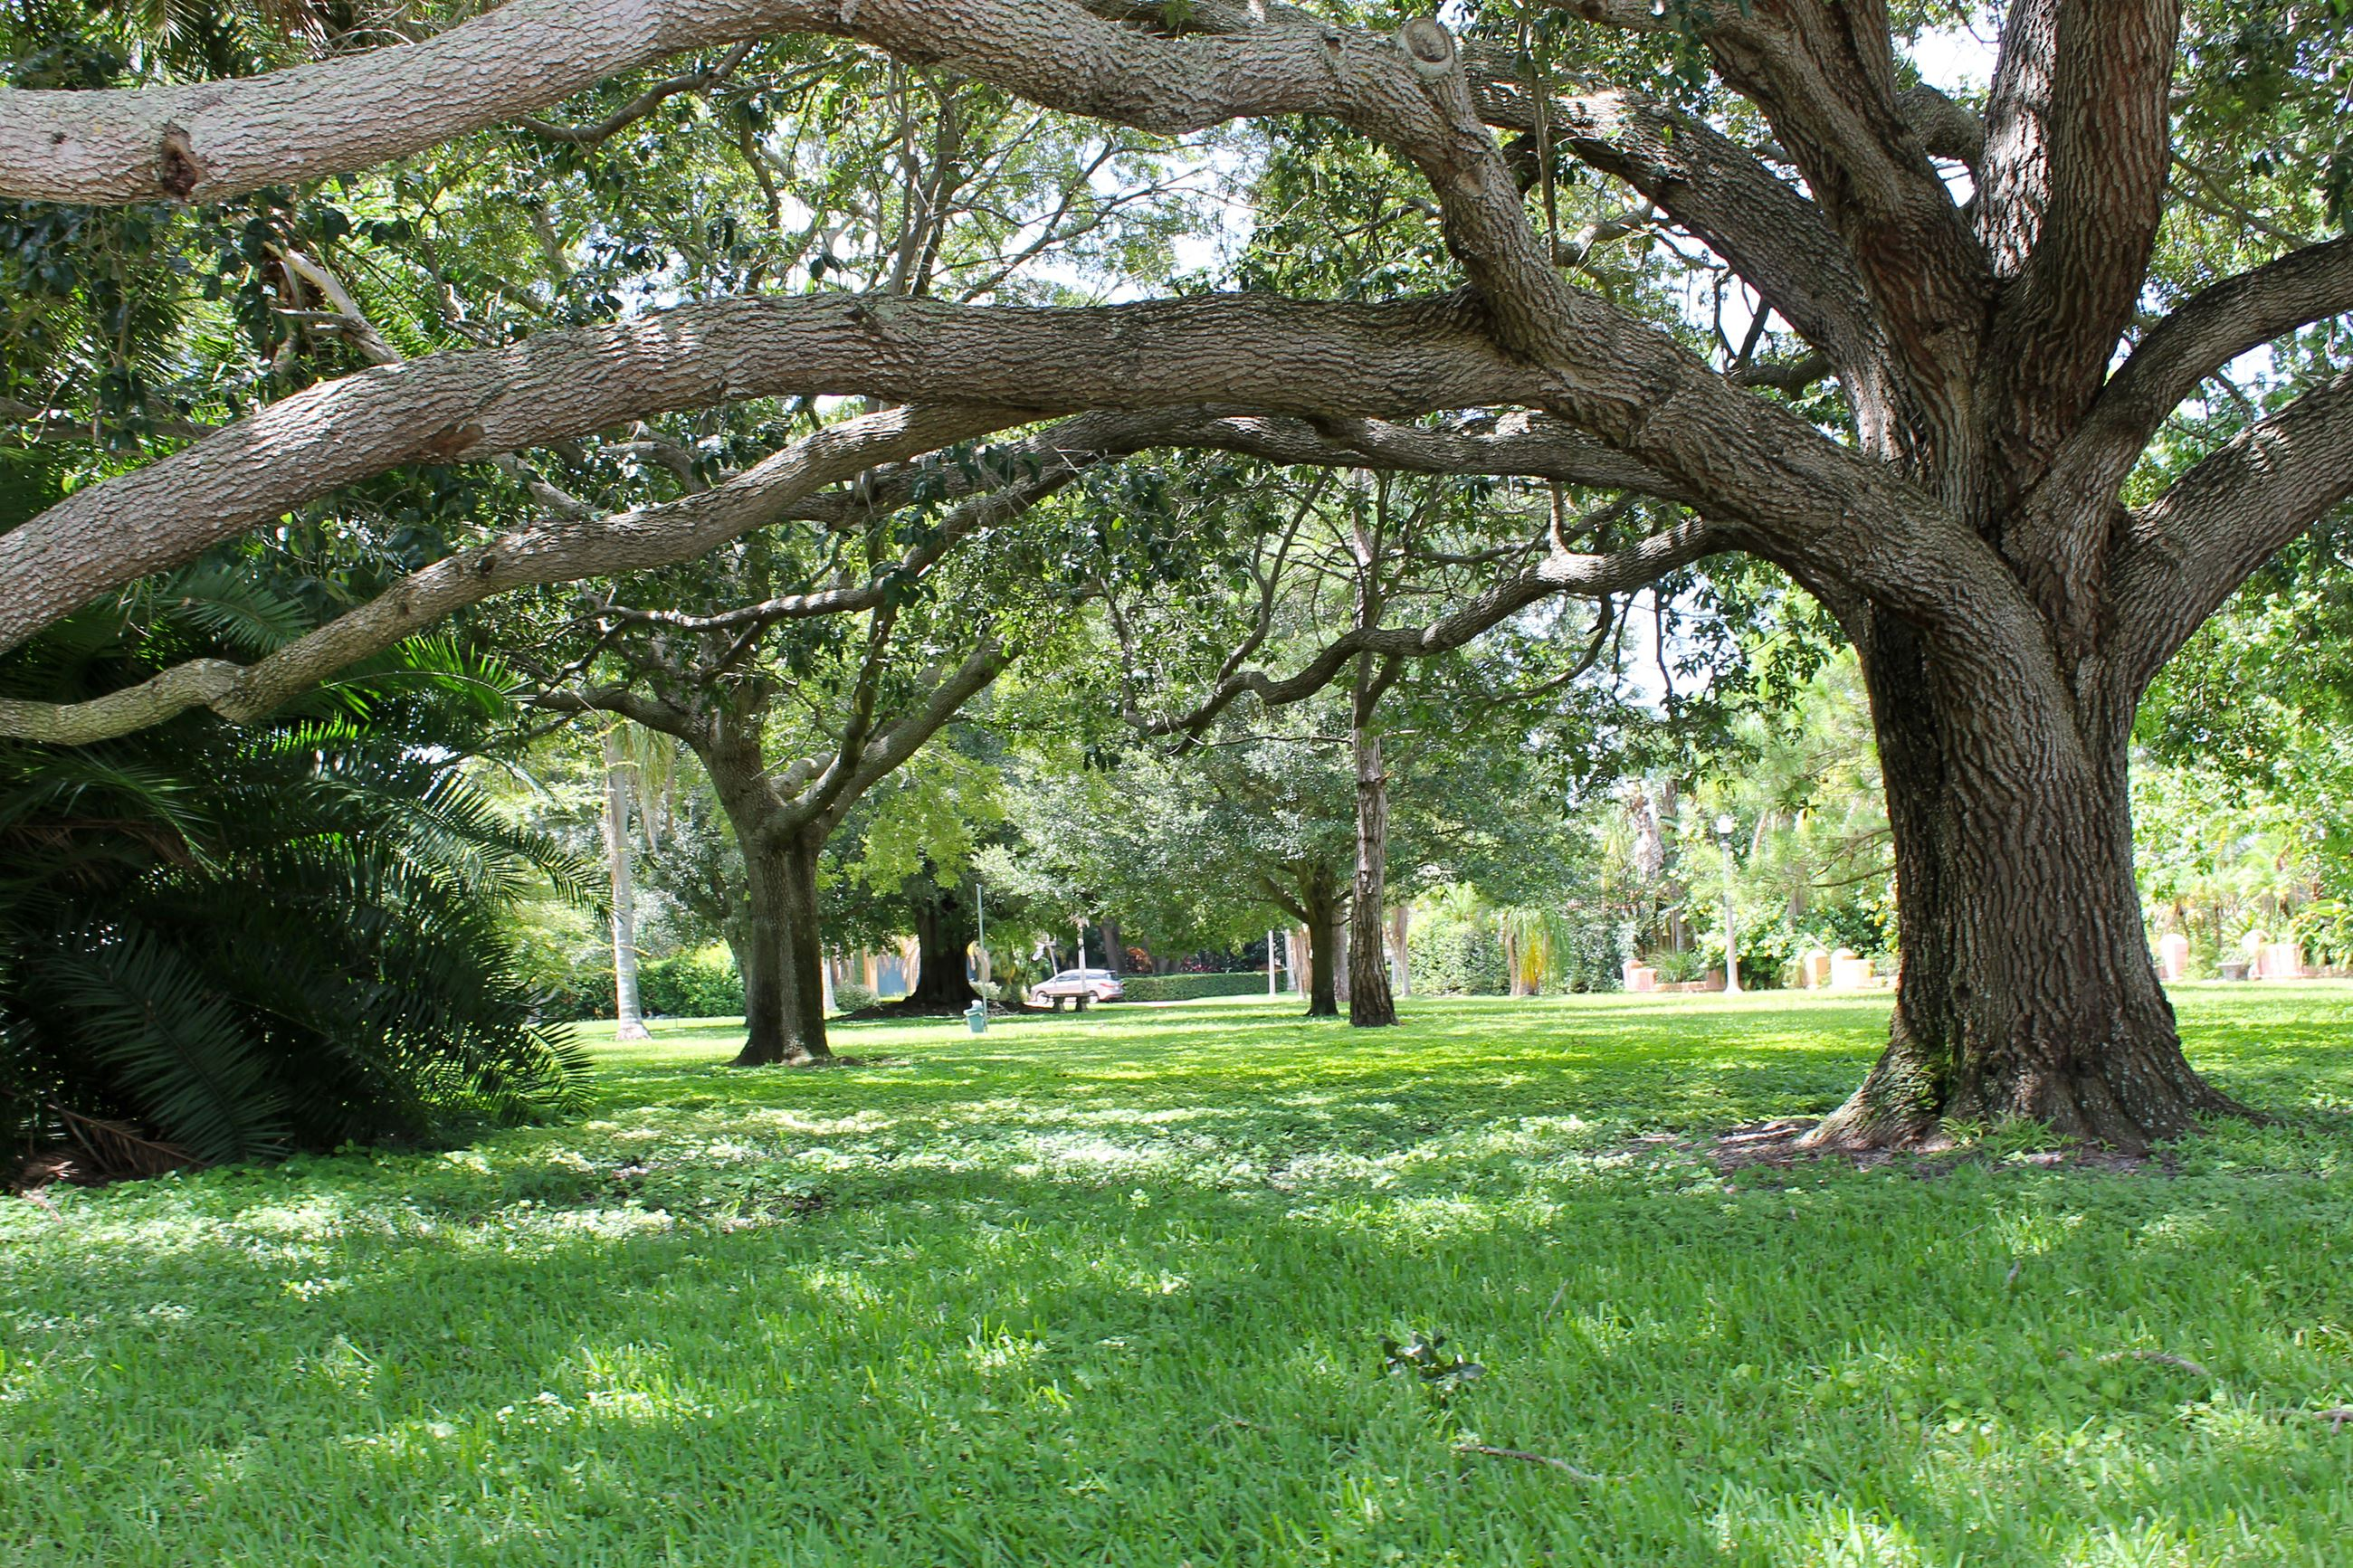 Large oak tree provides shade for the grass throughout DeSoto Park